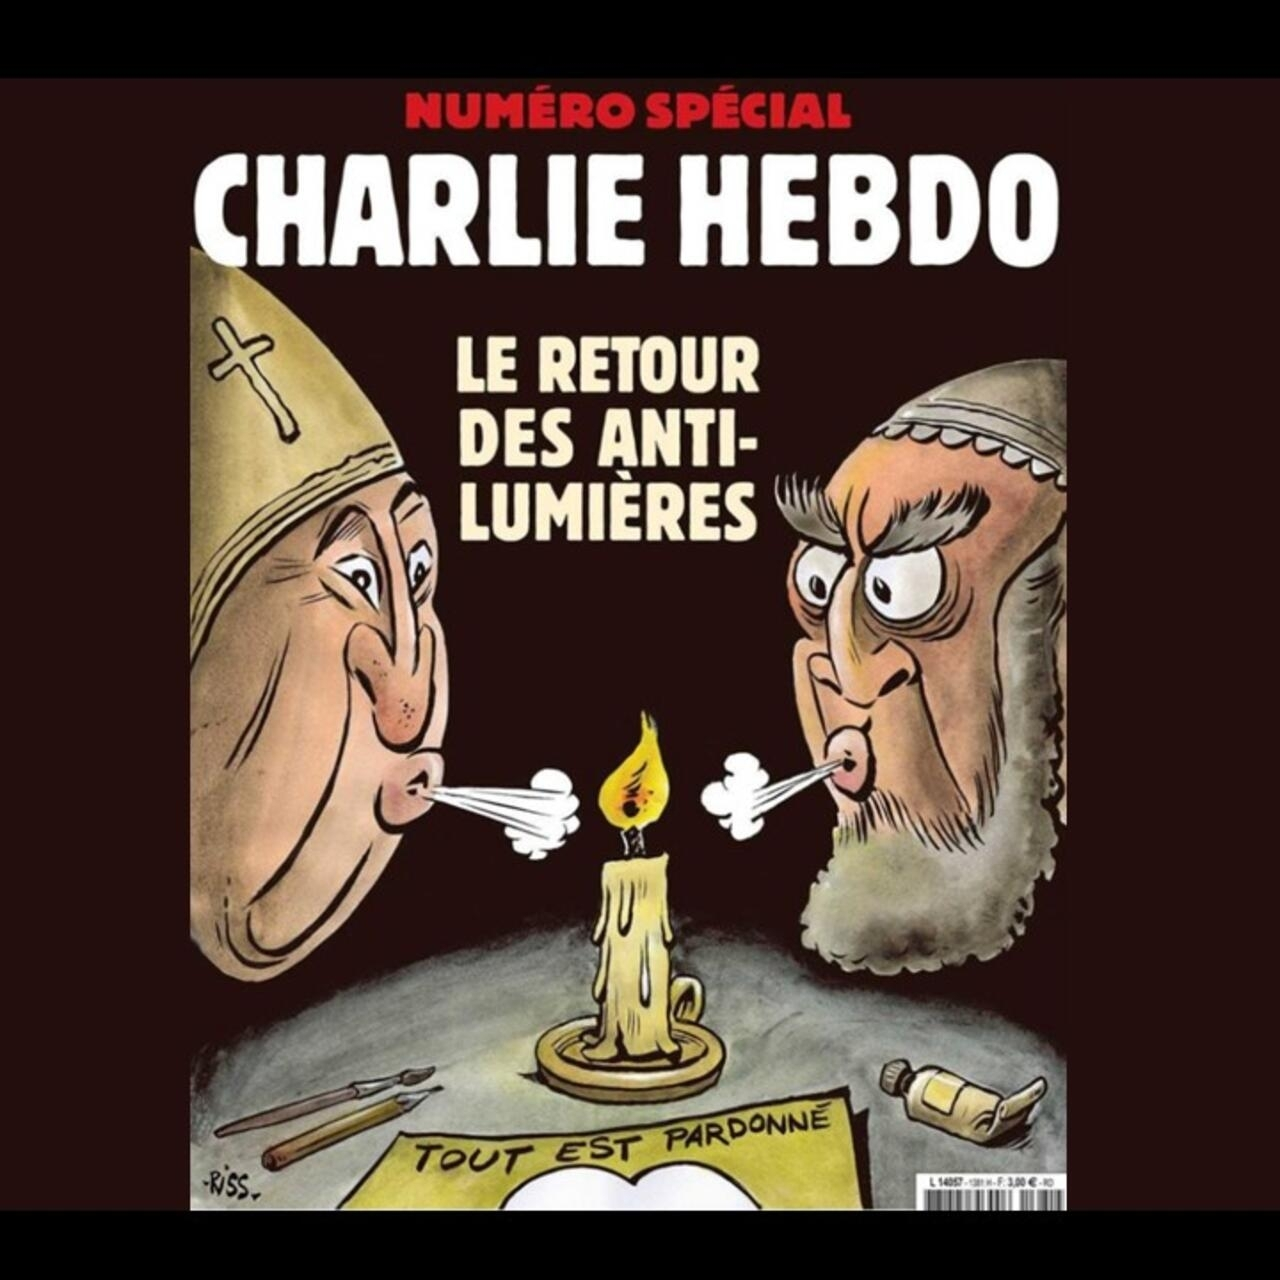 Charlie Hebdo Four Years On